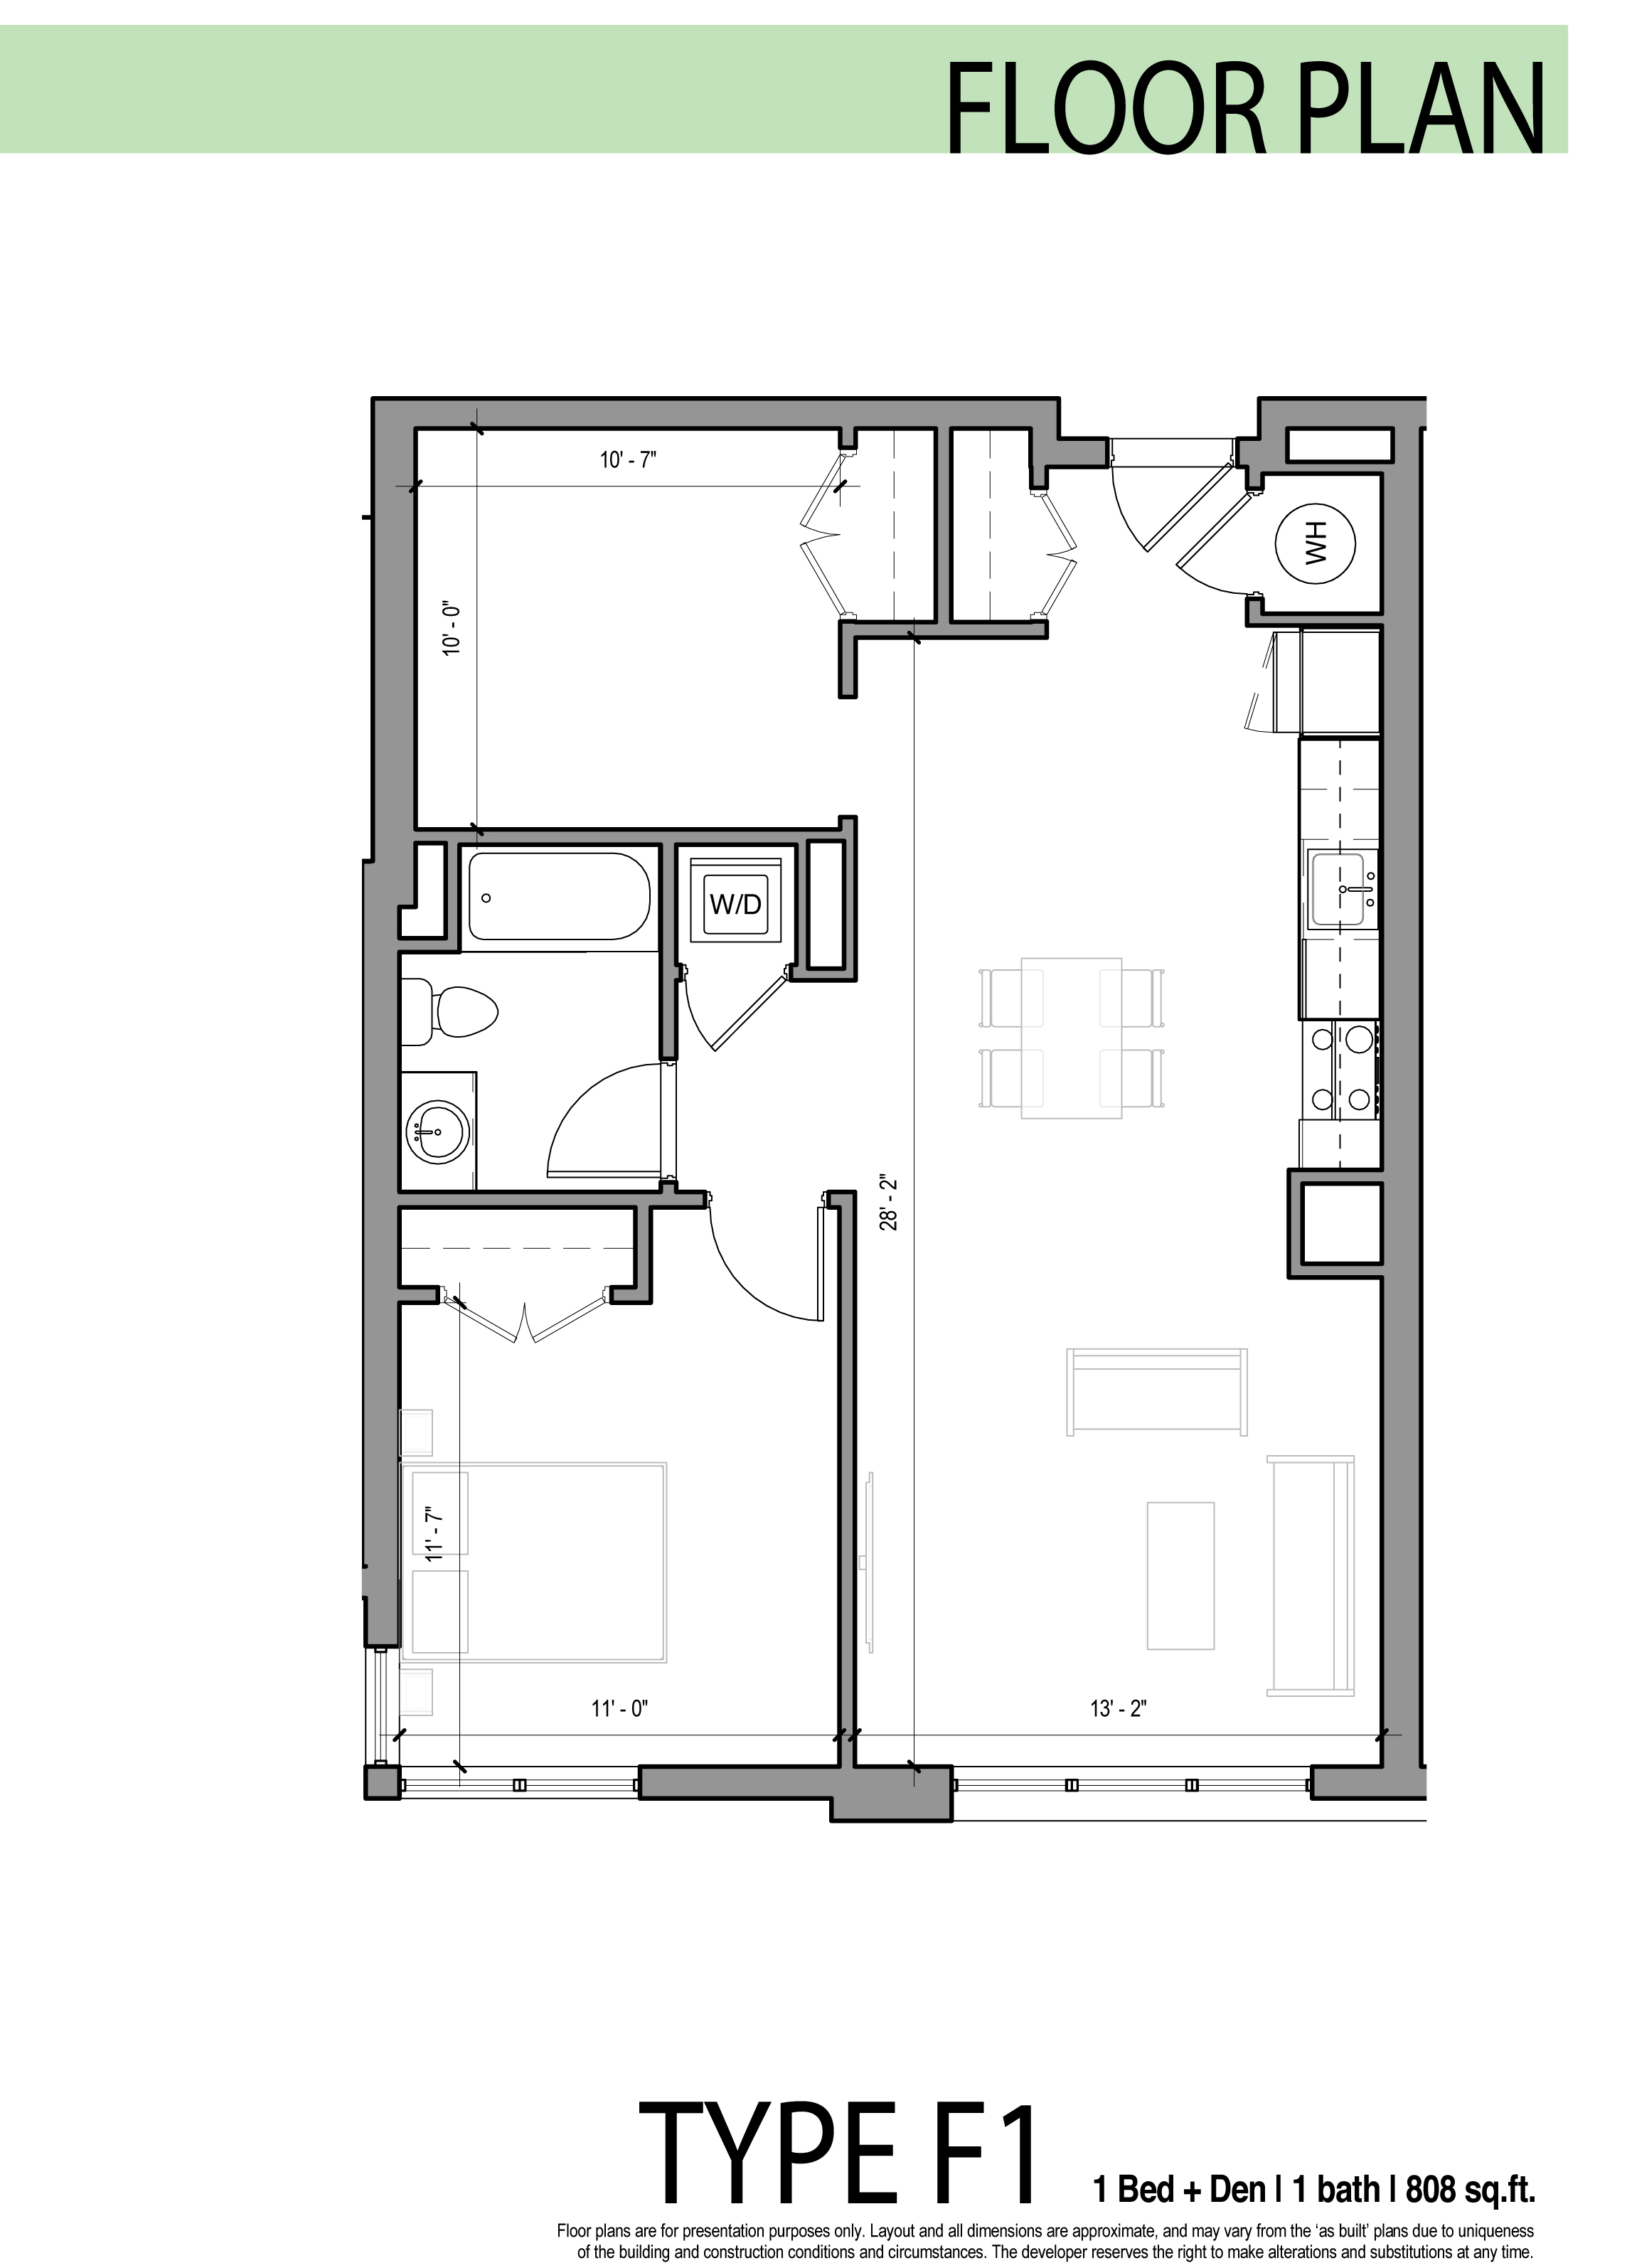 Edge allston floor plans for 1 bedroom plan